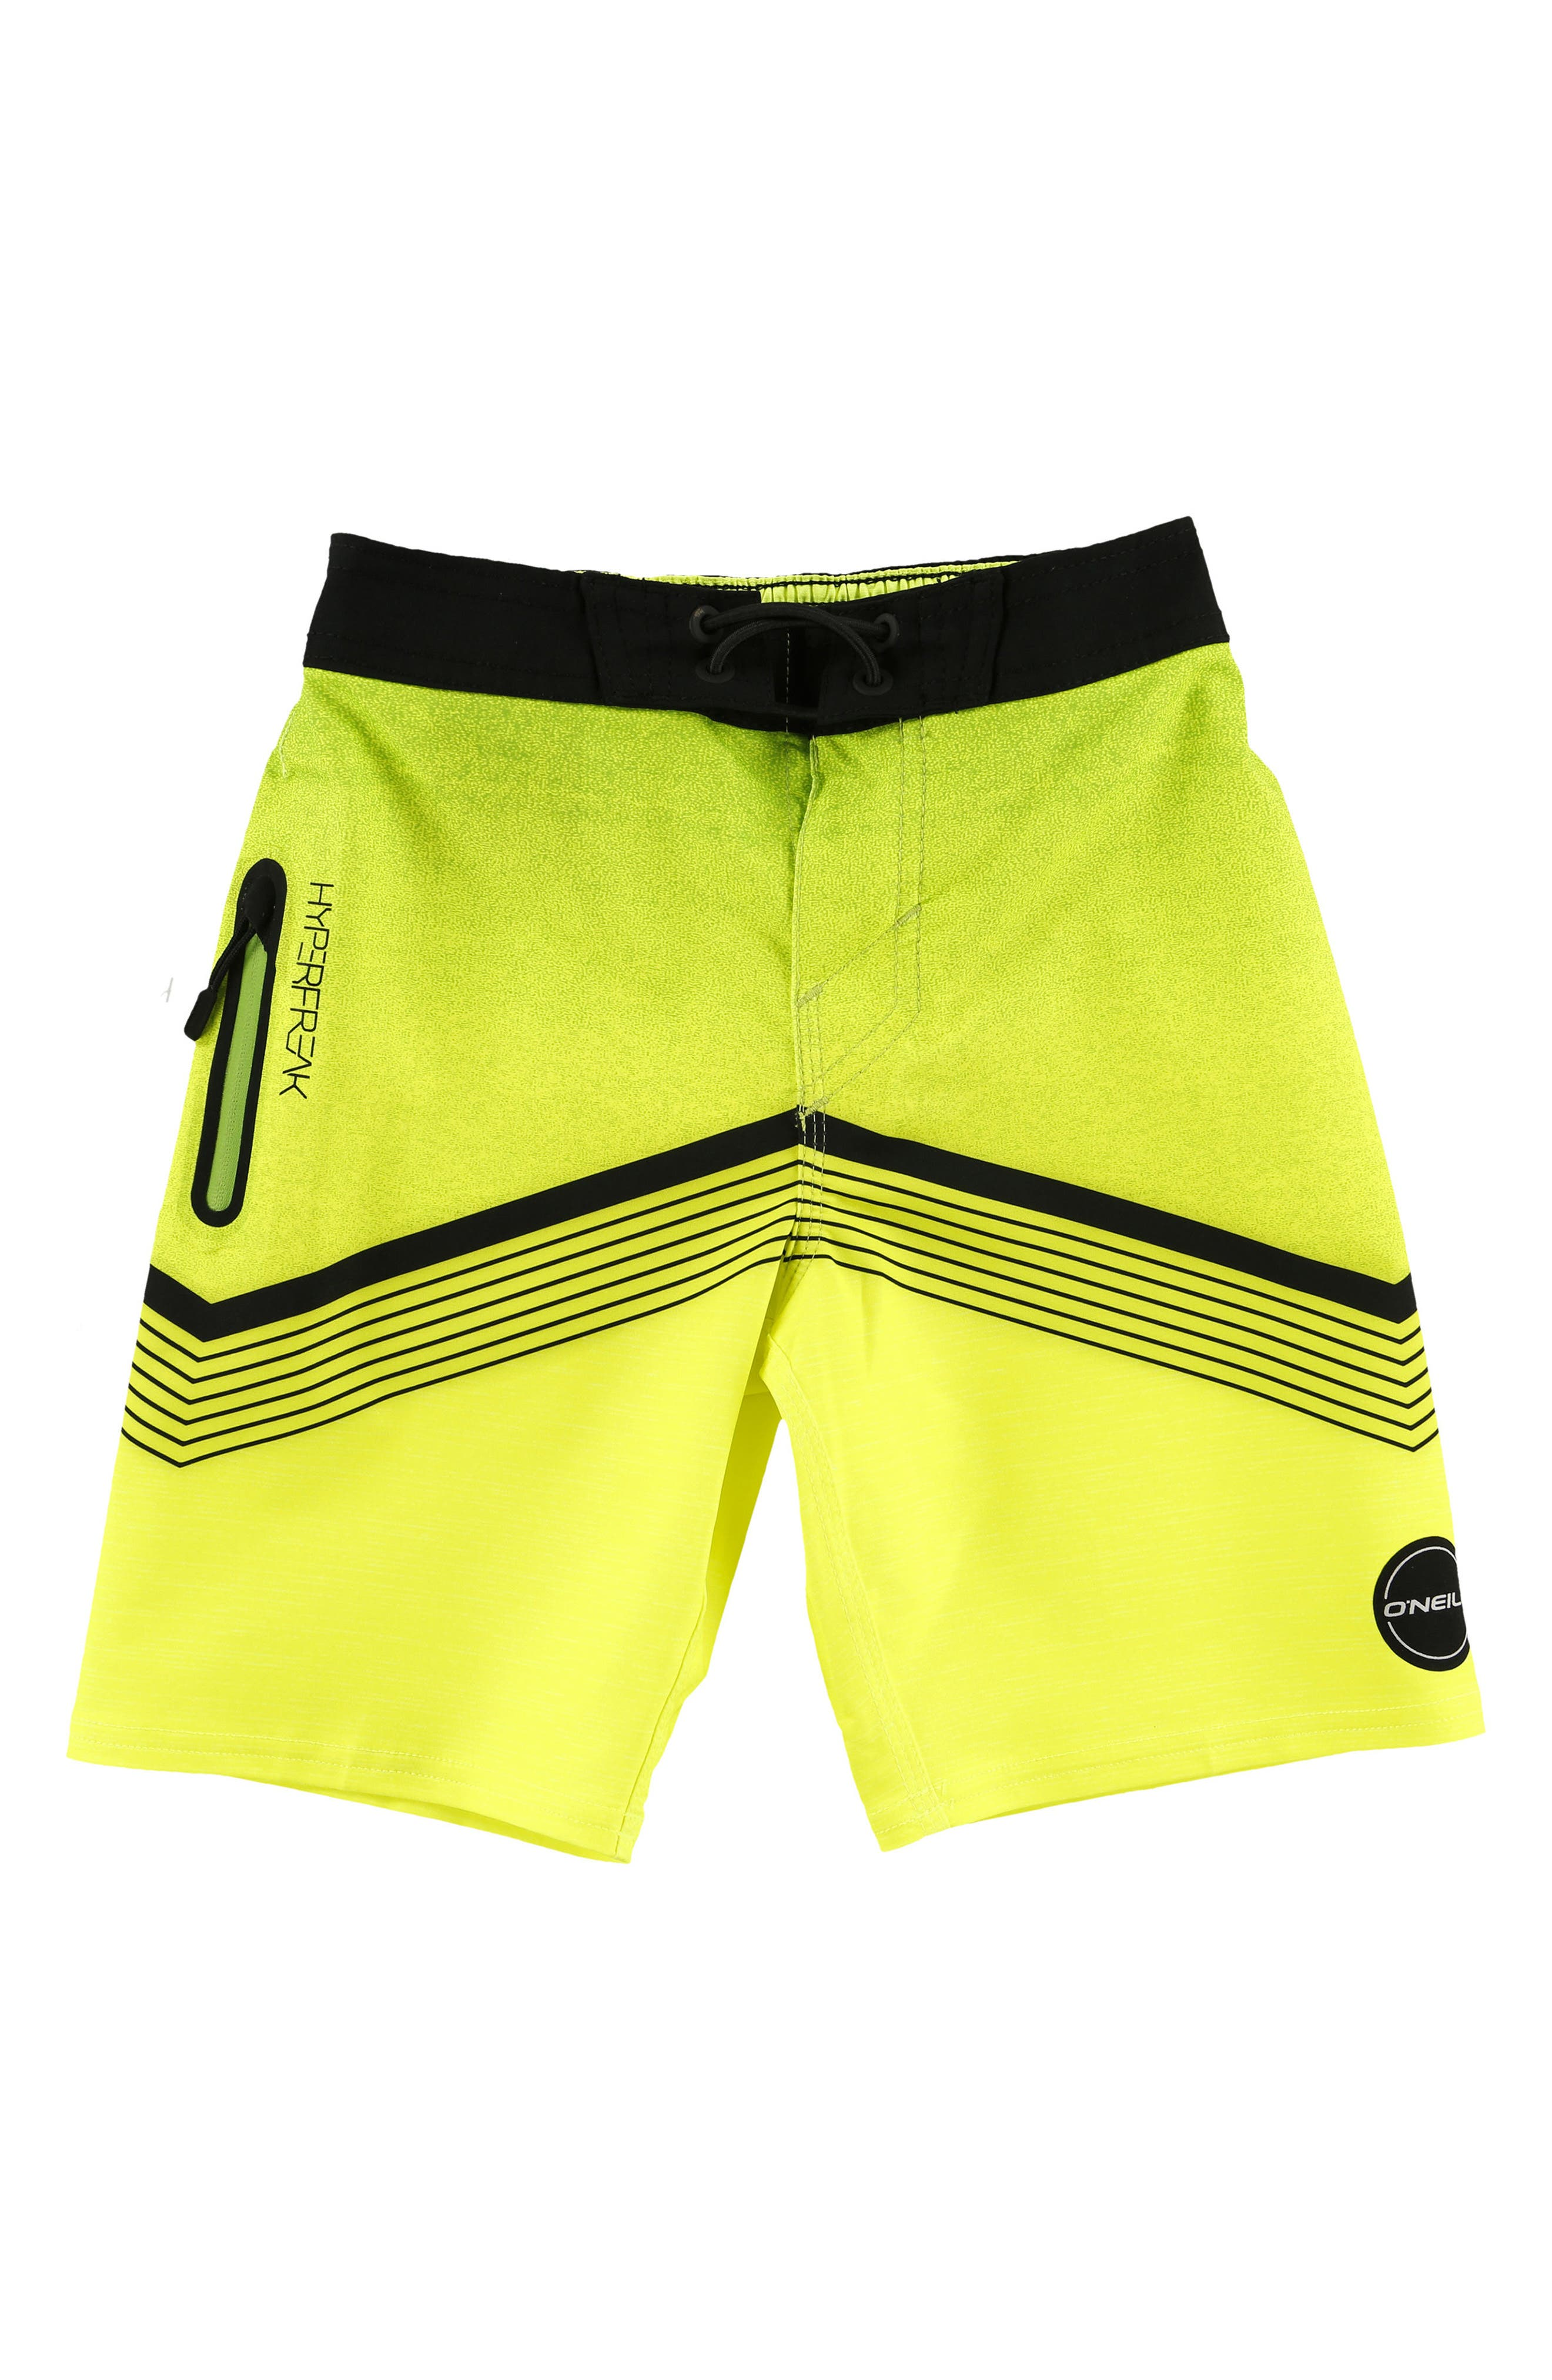 Hyperfreak Stretch Board Shorts,                         Main,                         color, Neon Green